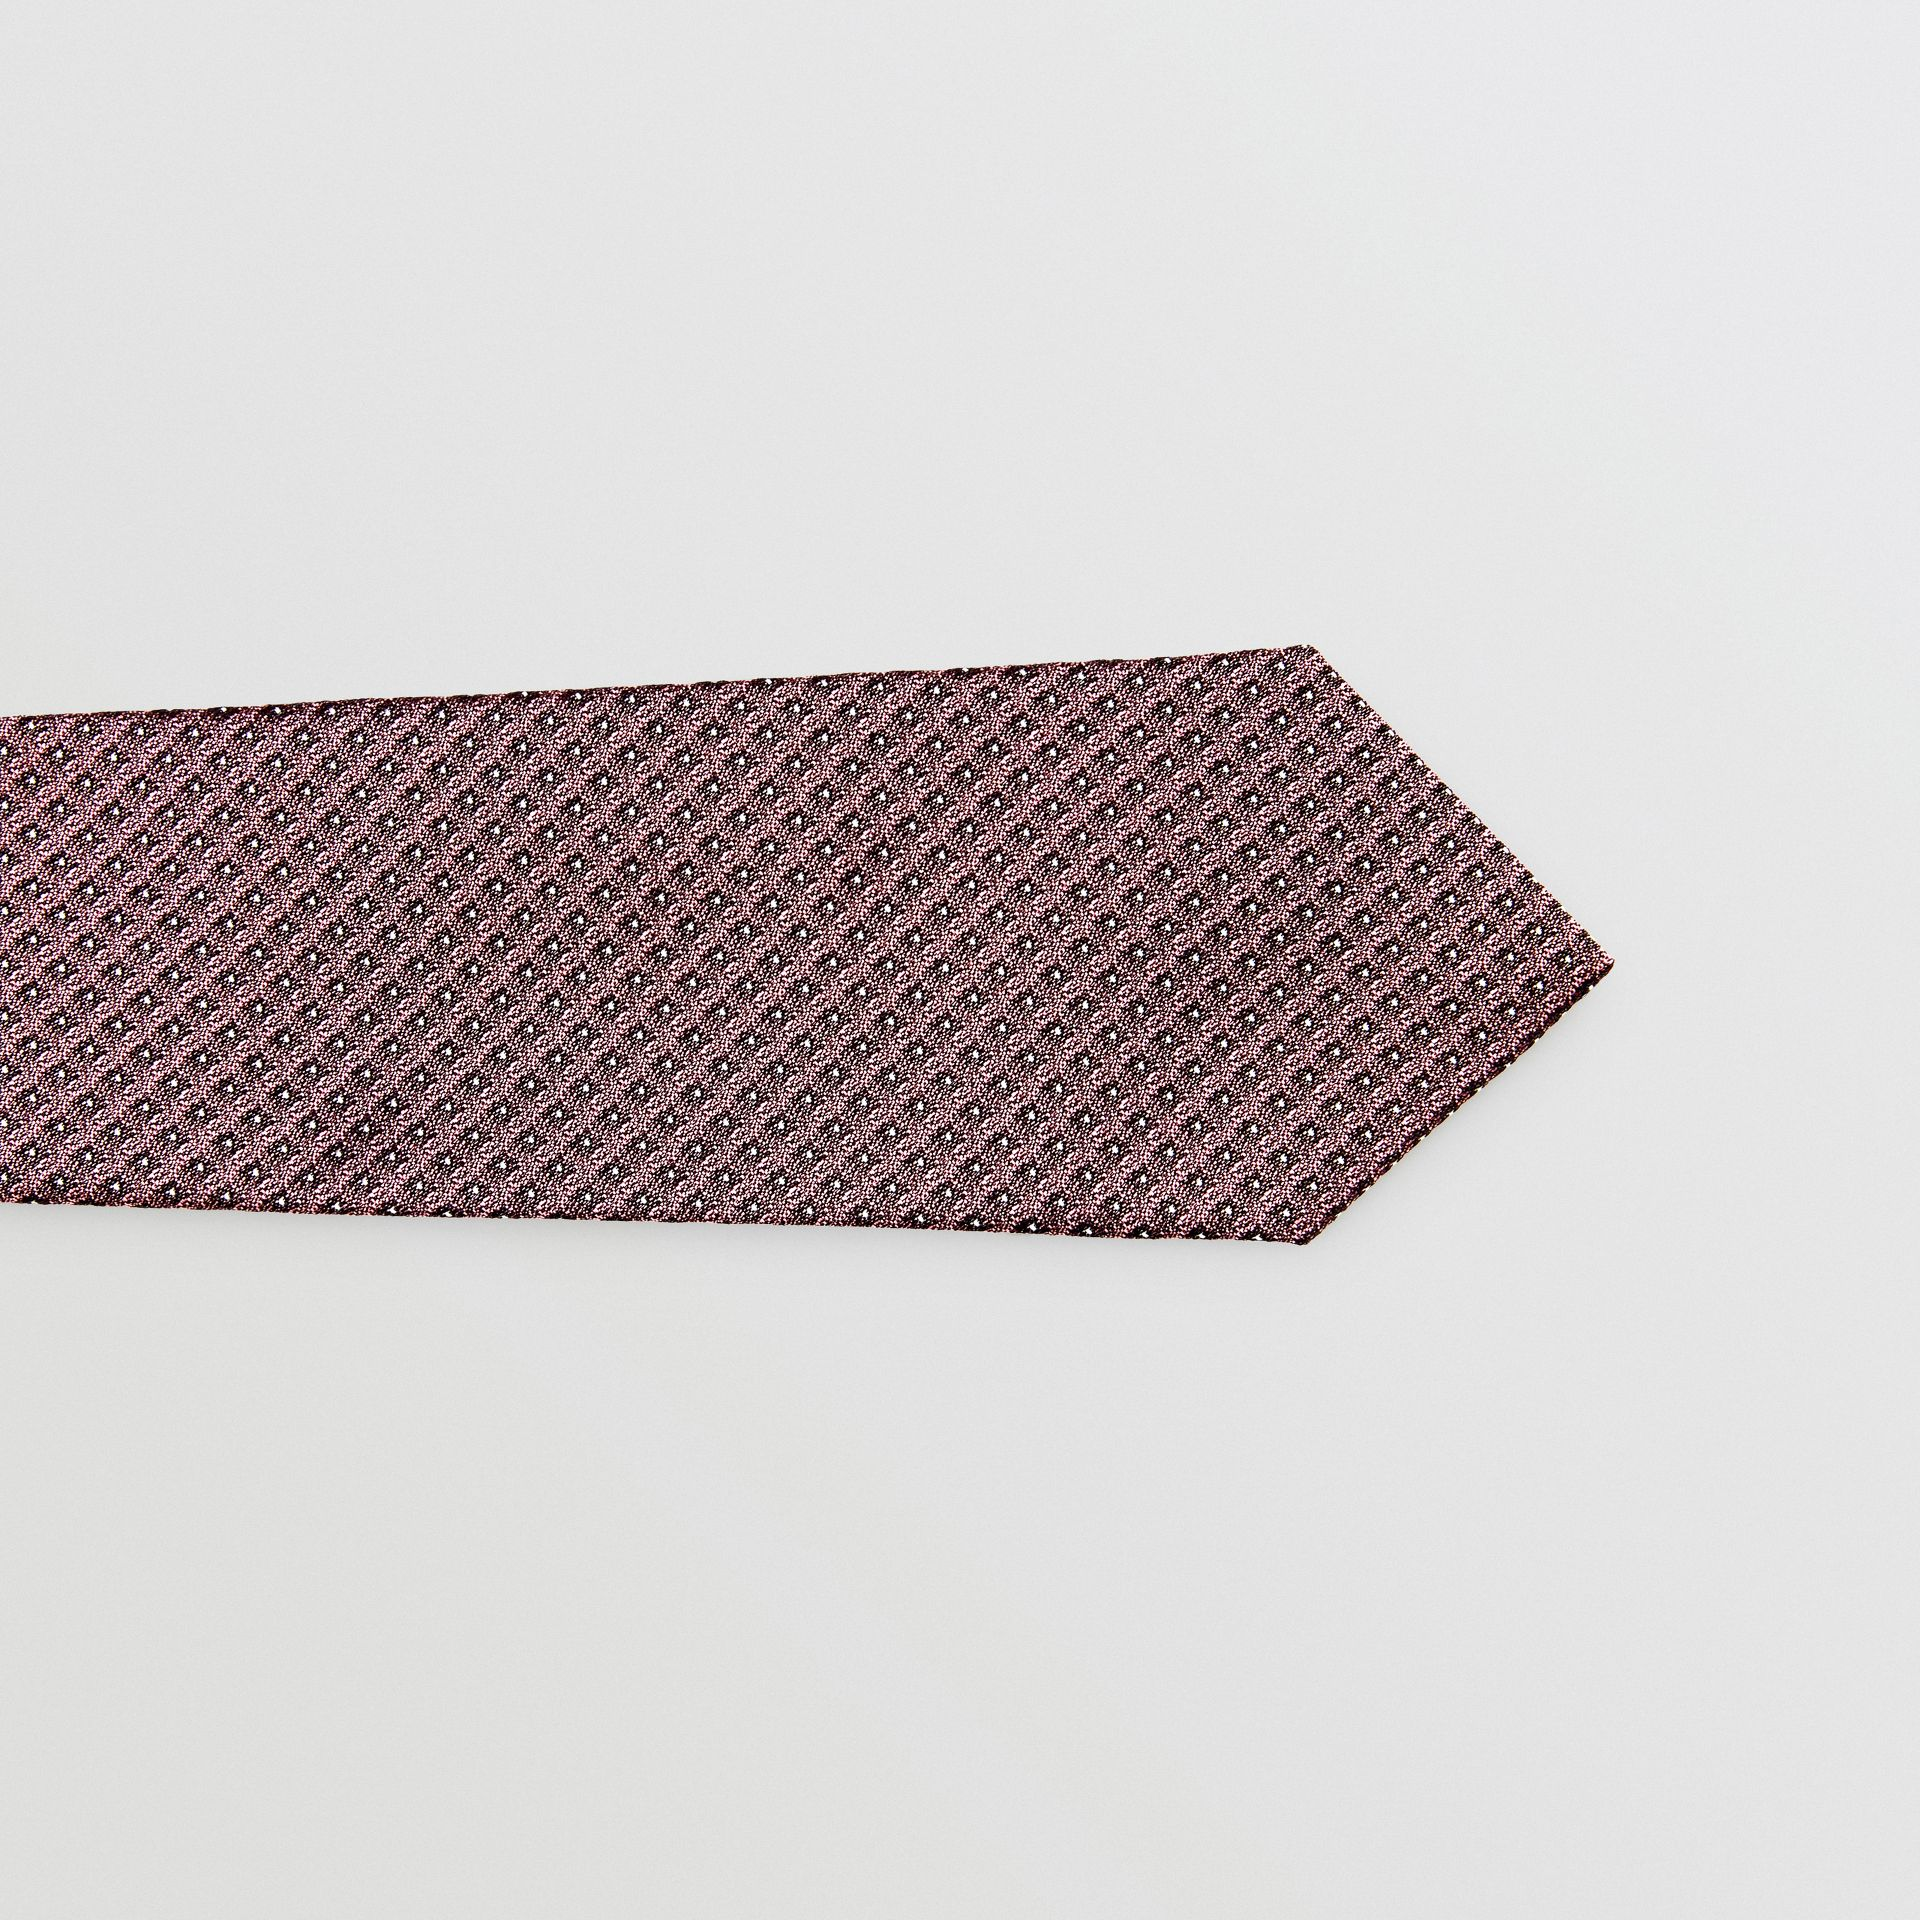 Classic Cut Micro Dot Silk Jacquard Tie in Garnet Pink - Men | Burberry United States - gallery image 1